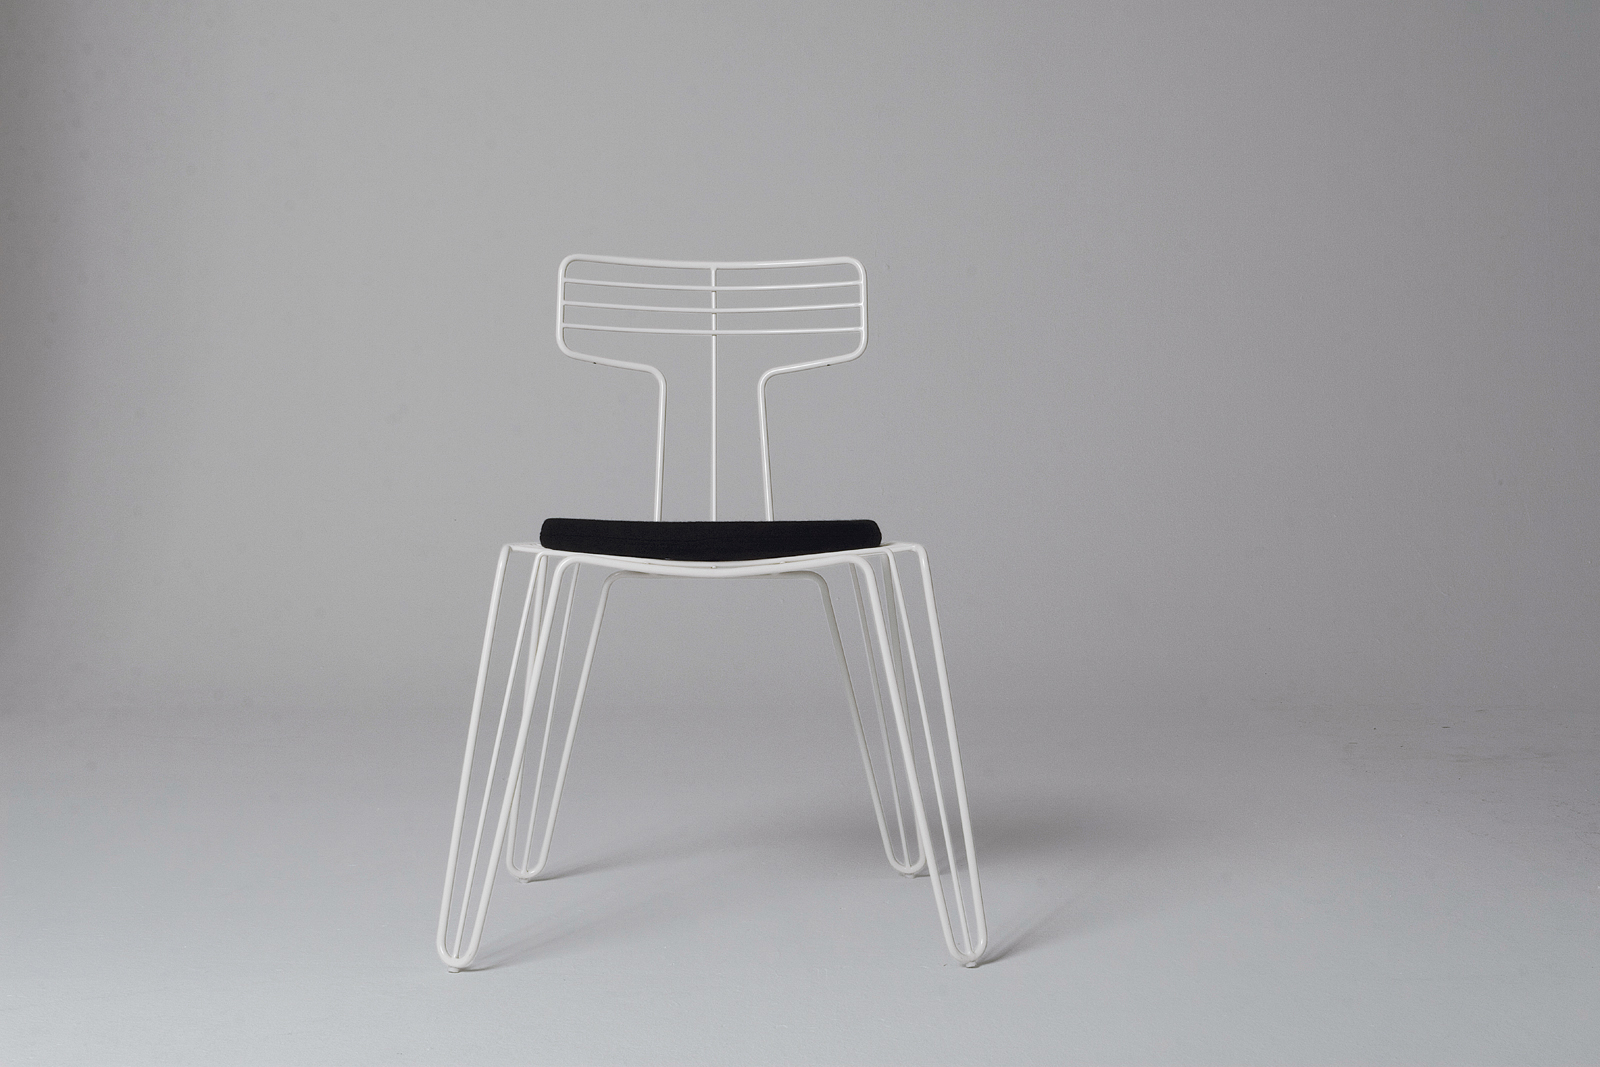 A dining chair from Tom Dixon's Wire series, which includes a coat rack and stand.